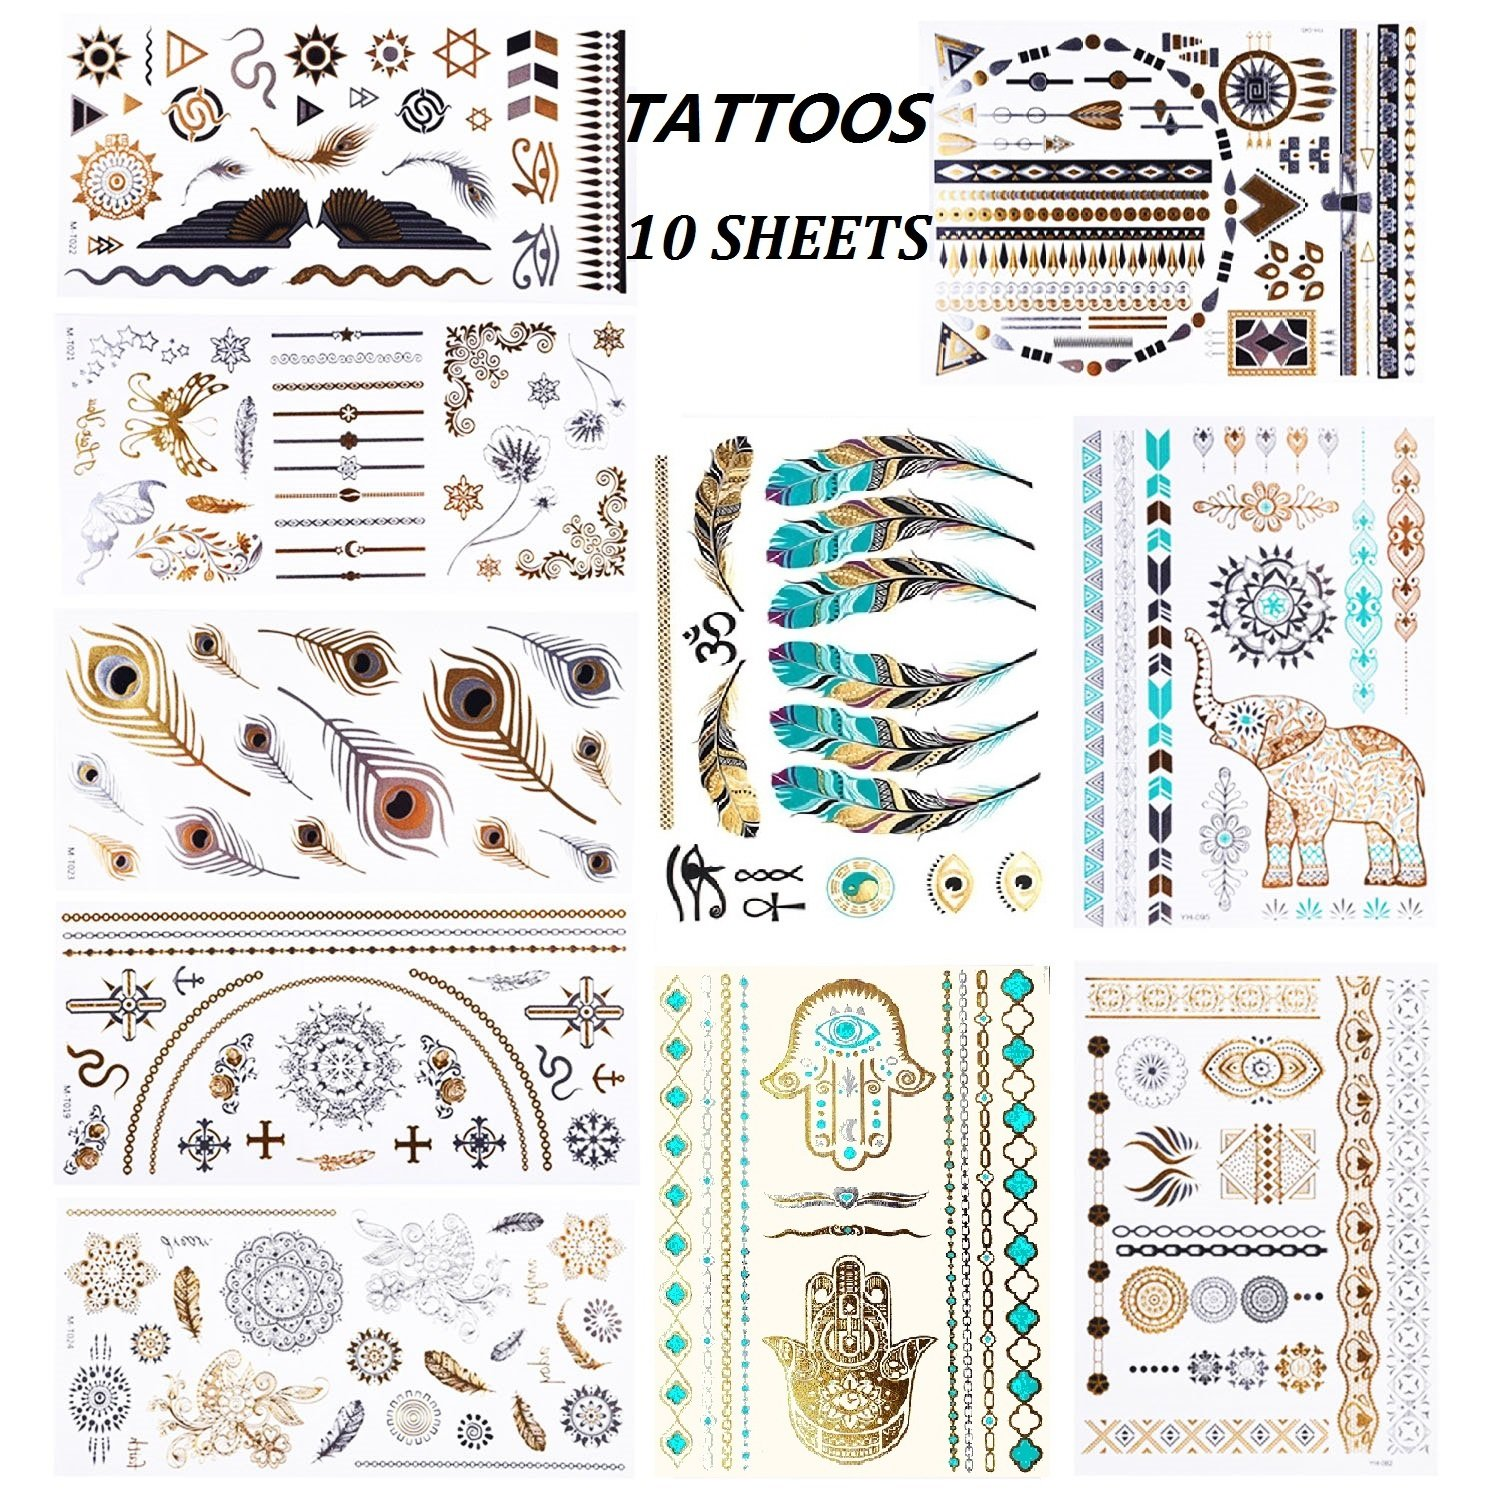 eBuy 10 Metallic Temporary Tattoos, Festival Waterproof Tattoo Sticker Body Fake Jewelry Tattoos 200 Shimmer Designs for Adults and Kids